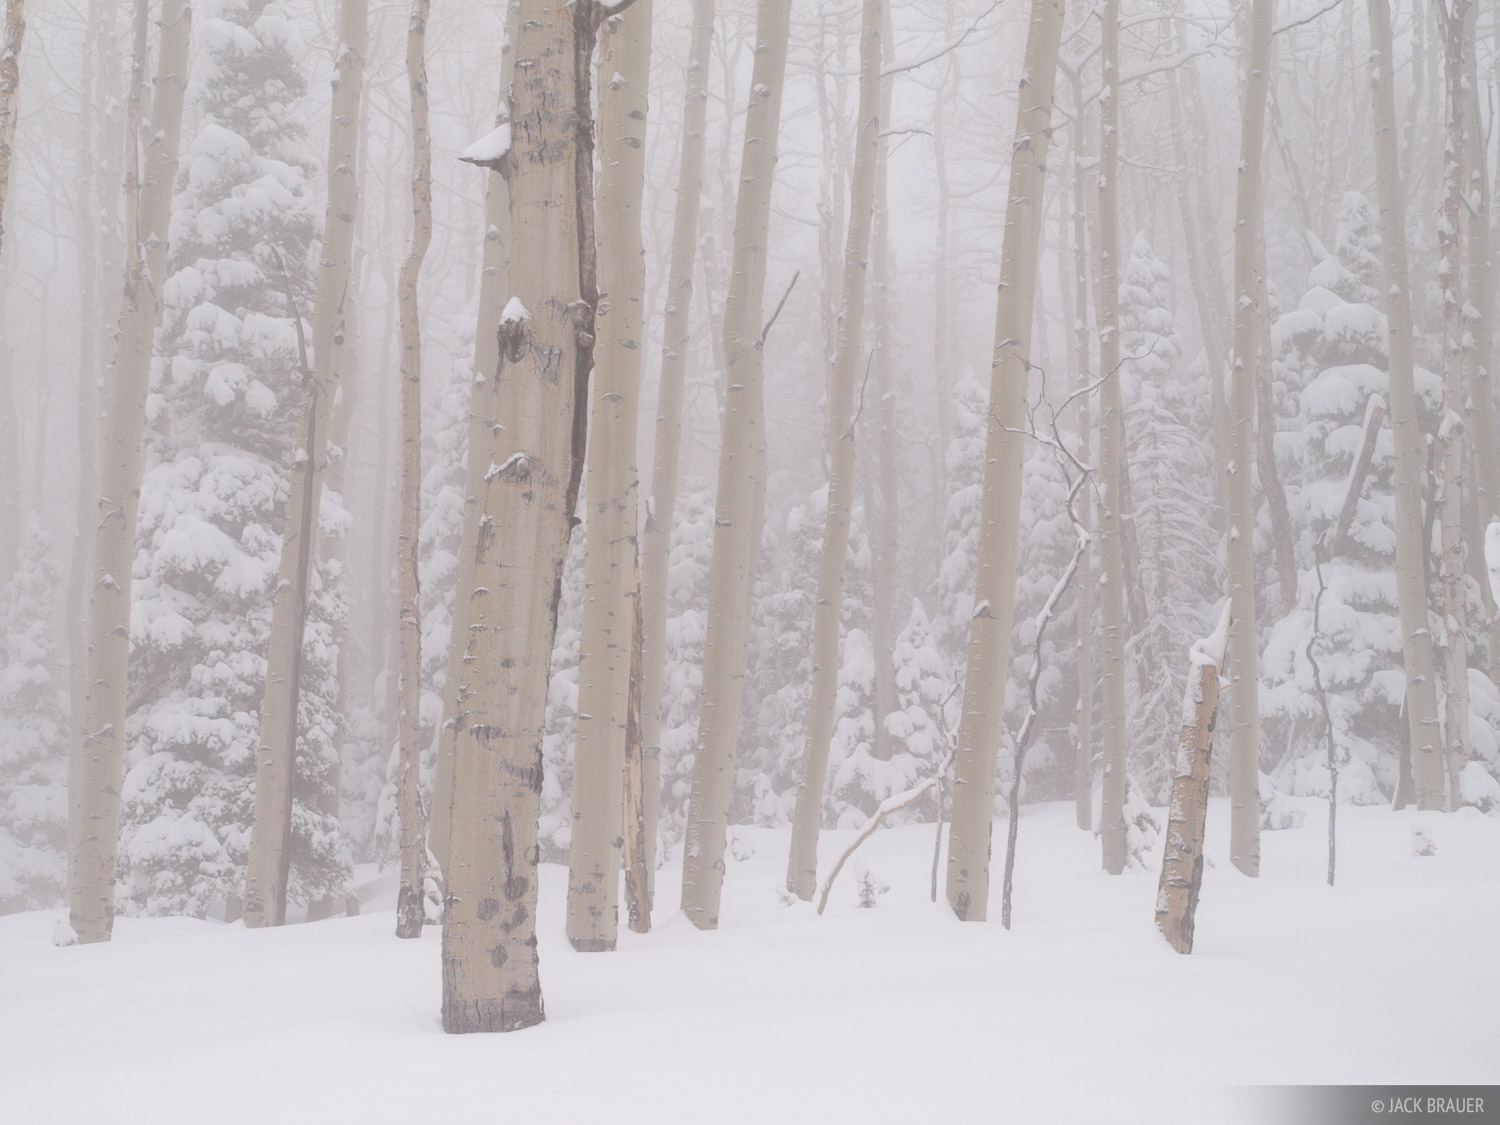 aspens, San Juan Mountains, Colorado, winter, snow, photo